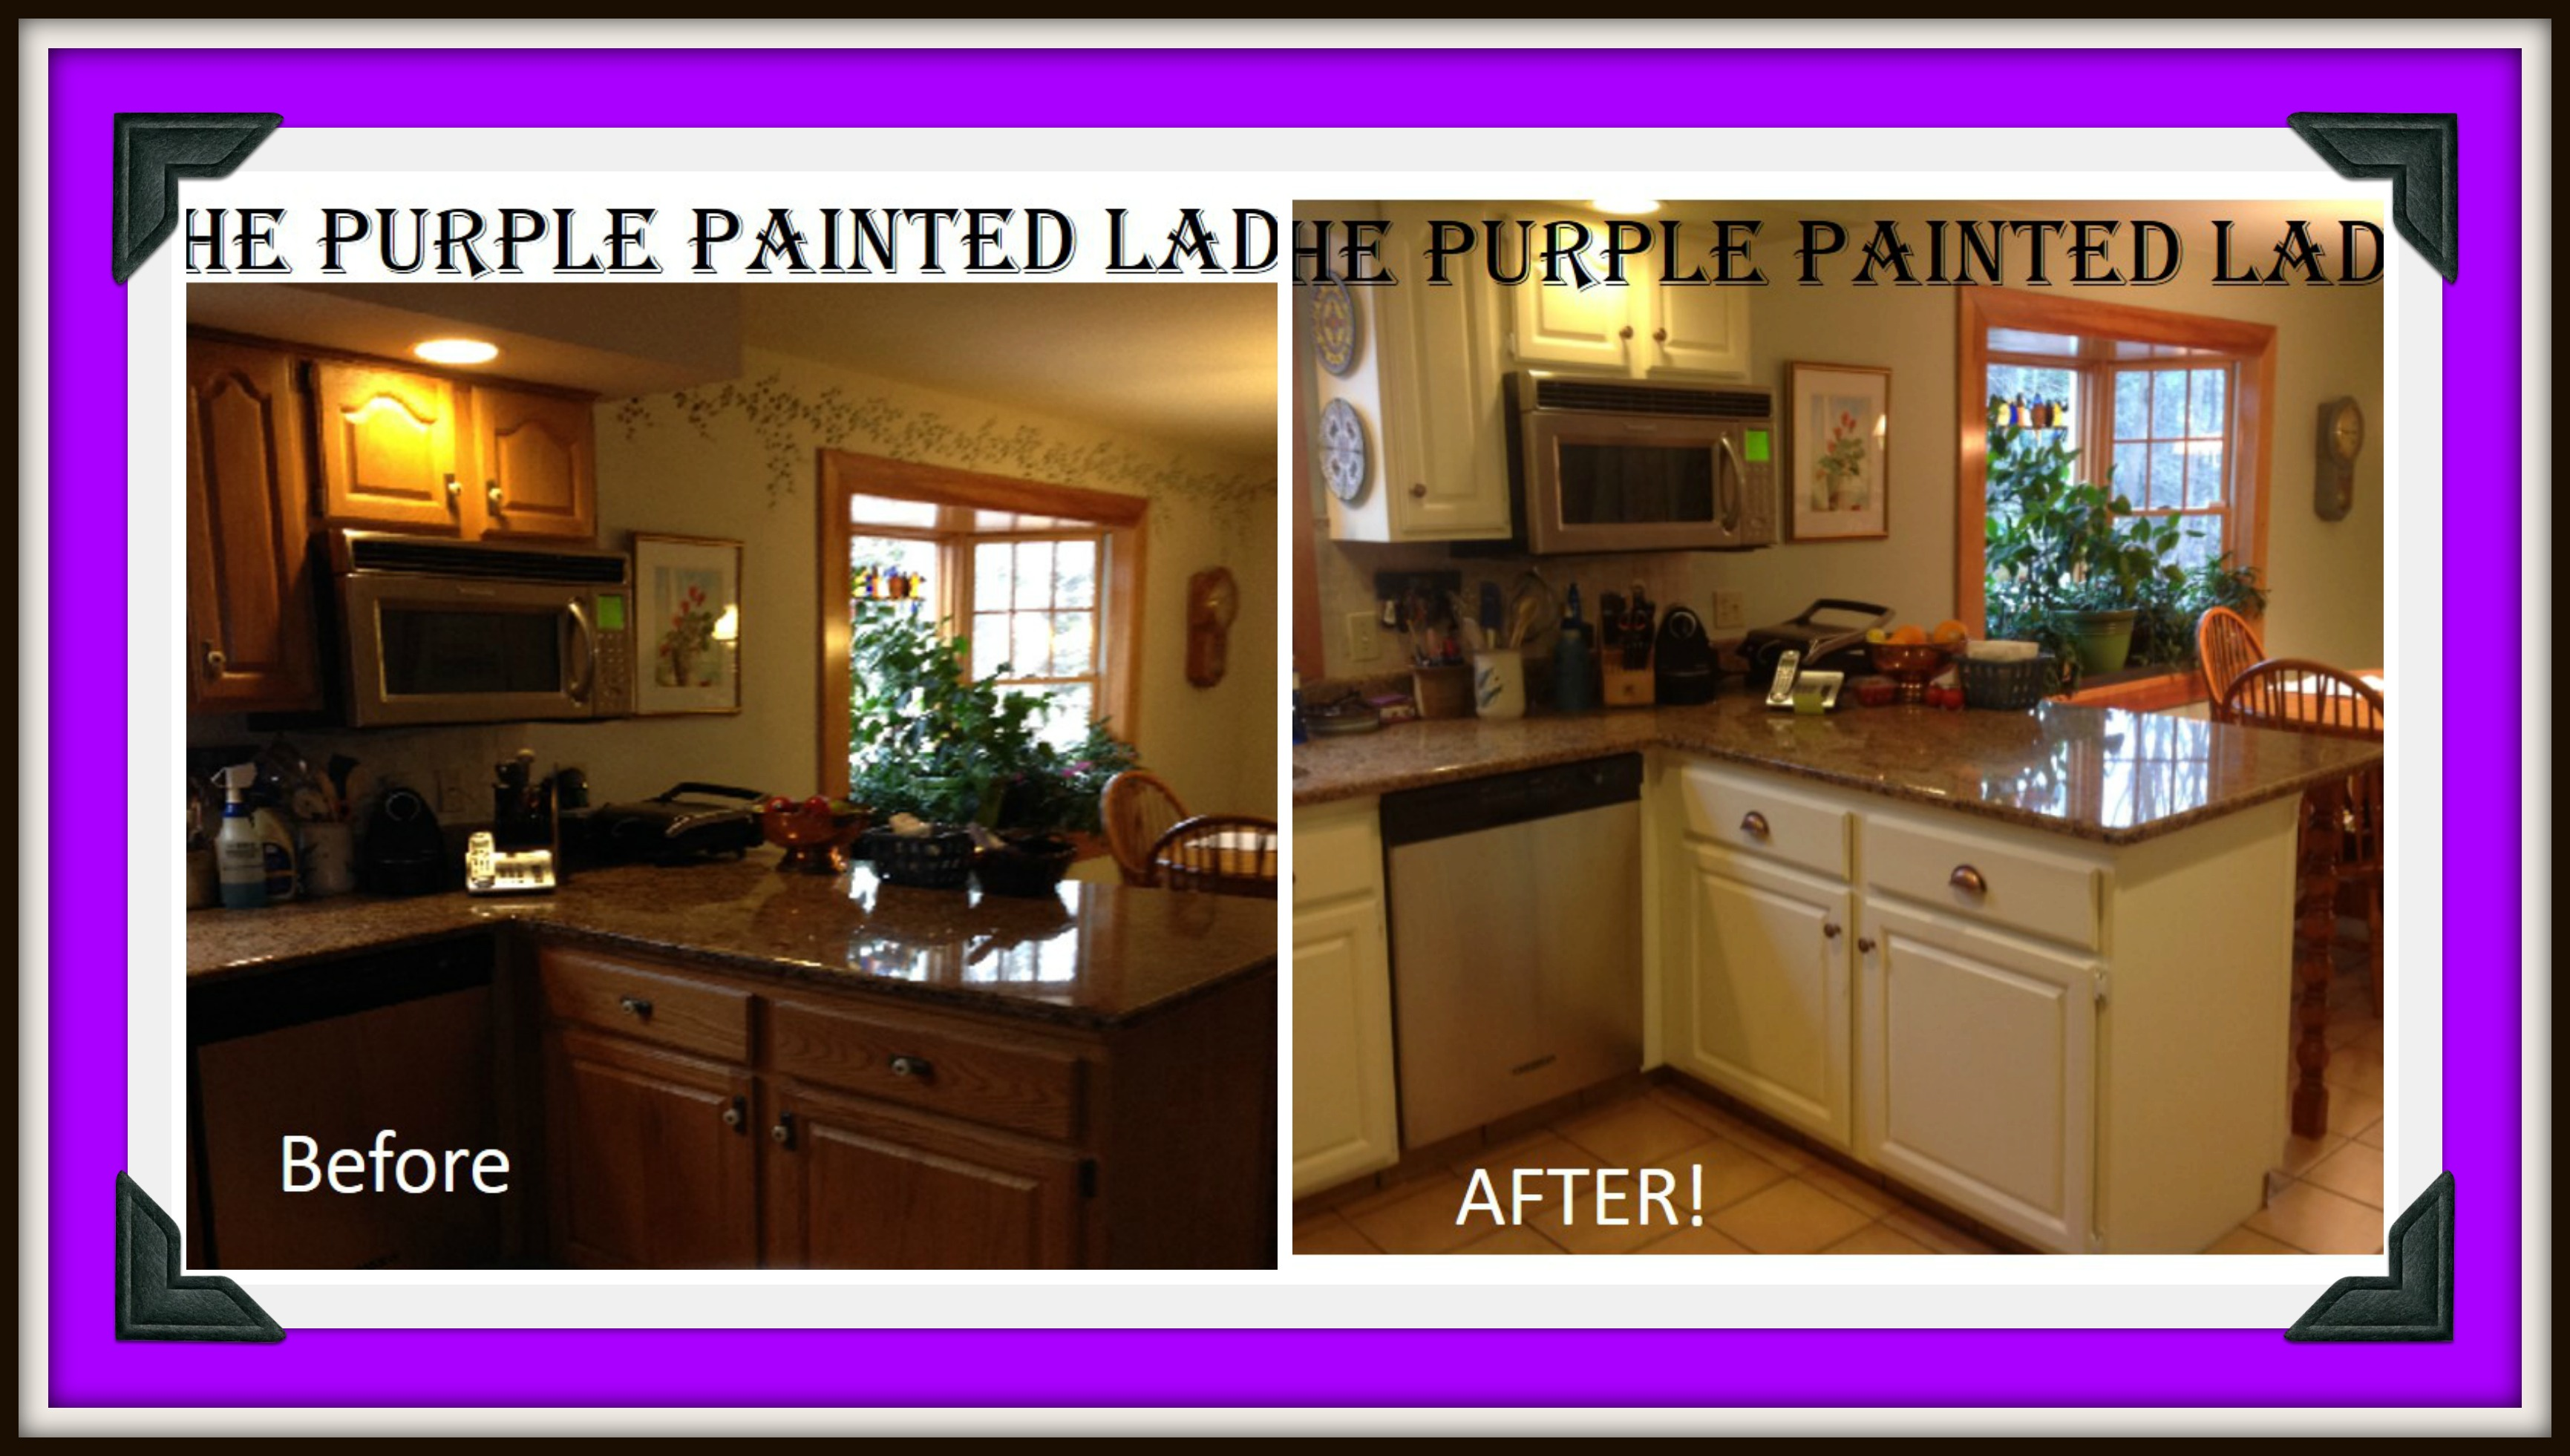 Chalk Paint On Kitchen Cabinets do your kitchen cabinets look tired? | the purple painted lady